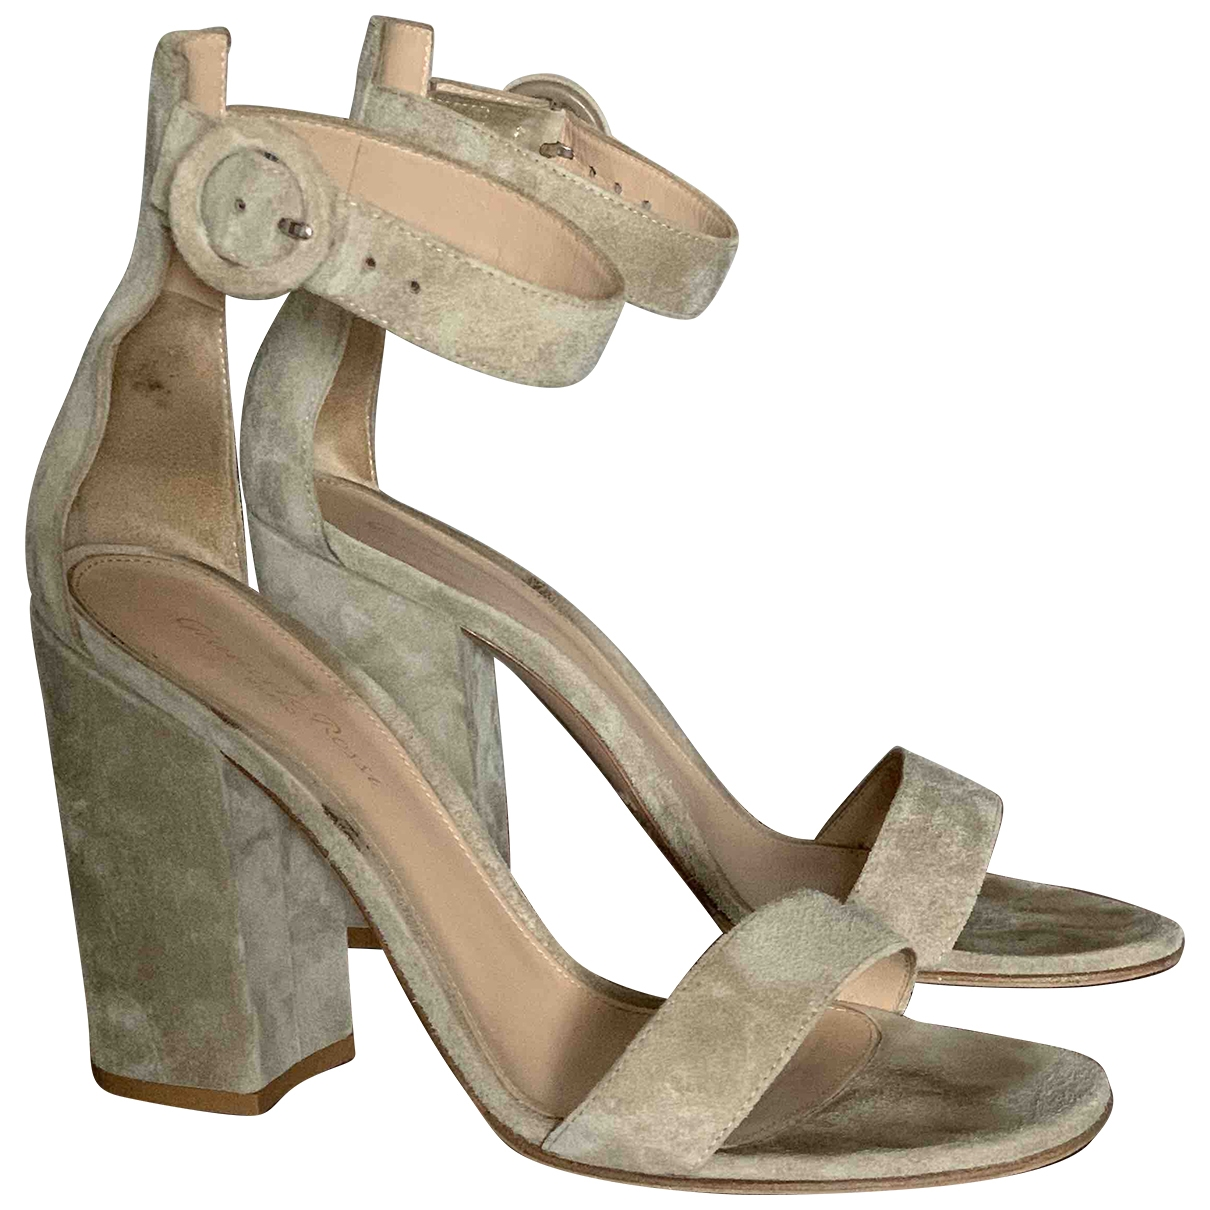 Gianvito Rossi Versilia Beige Suede Sandals for Women 39 EU